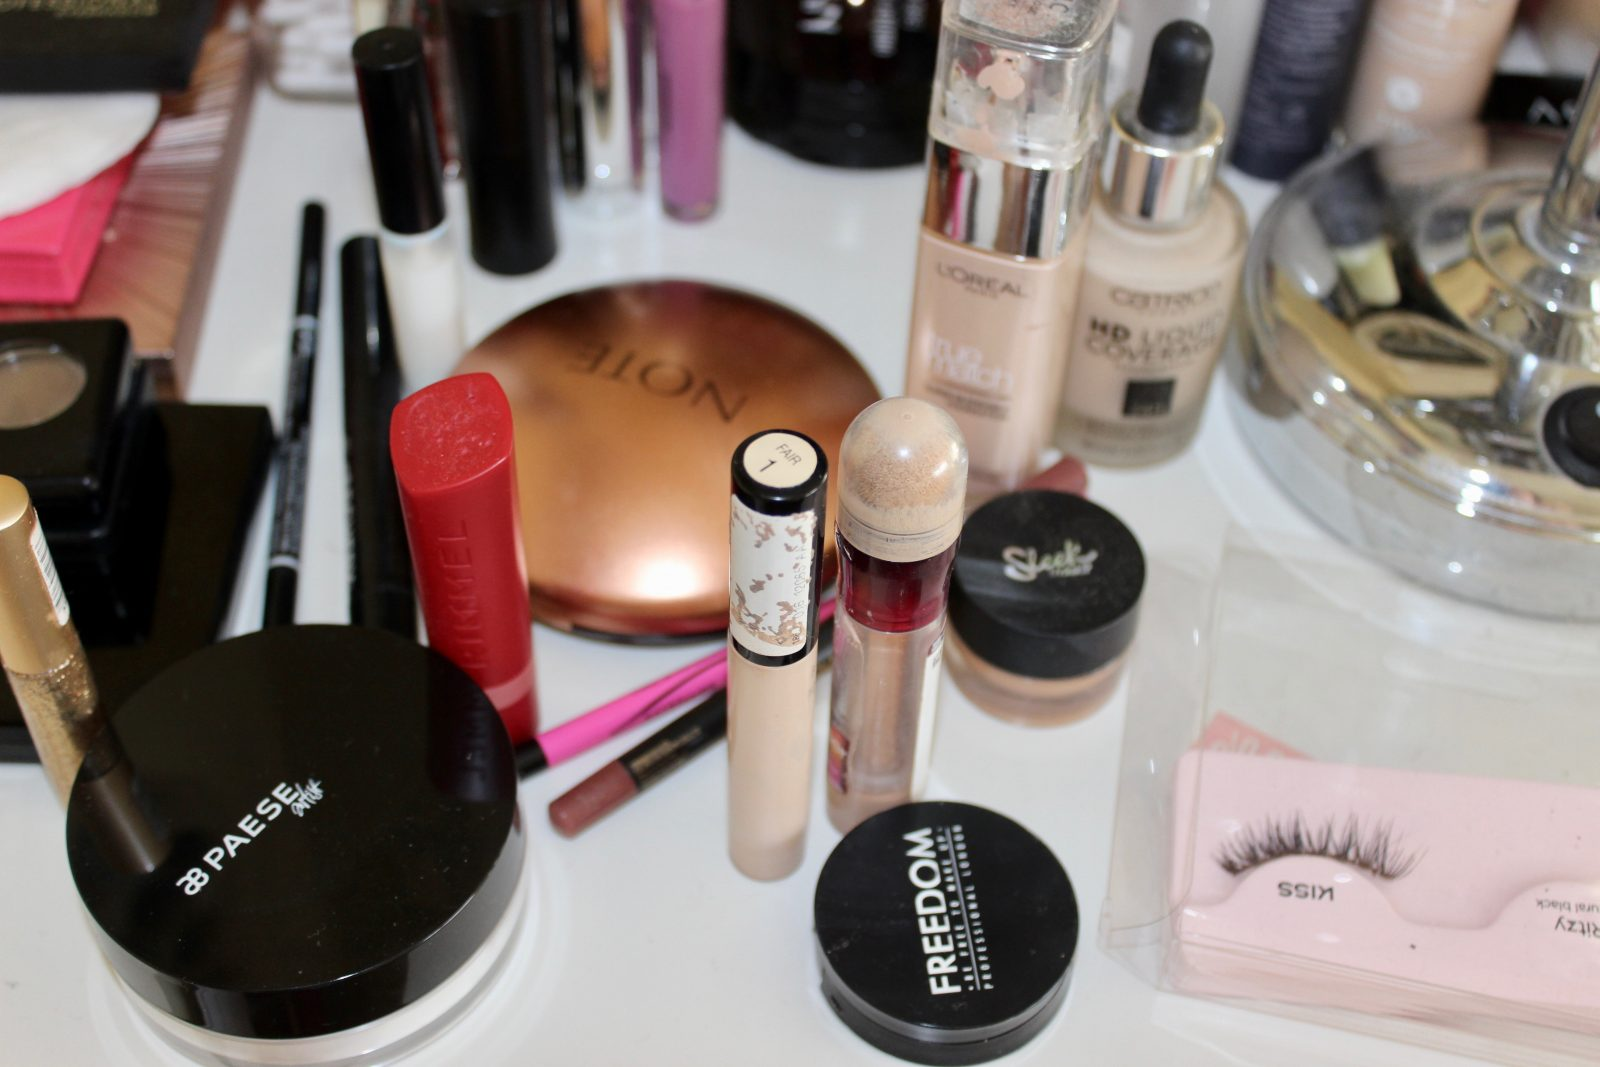 Party Makeup Affordable Products_6016 - Irish Beauty Blog Beautynook